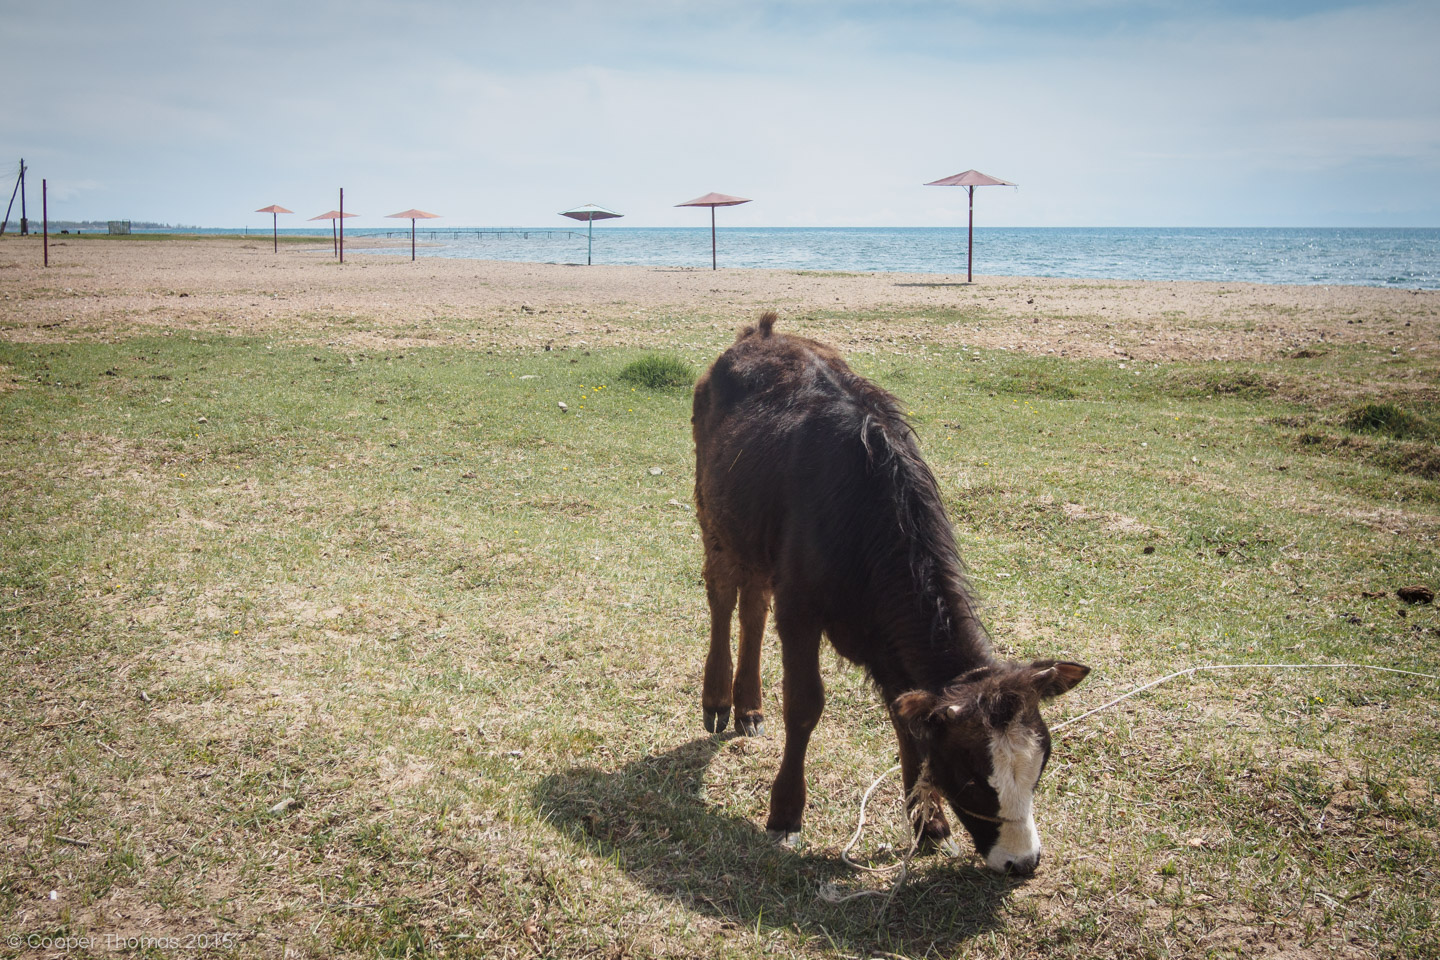 Cow grazing on Tamchy beach